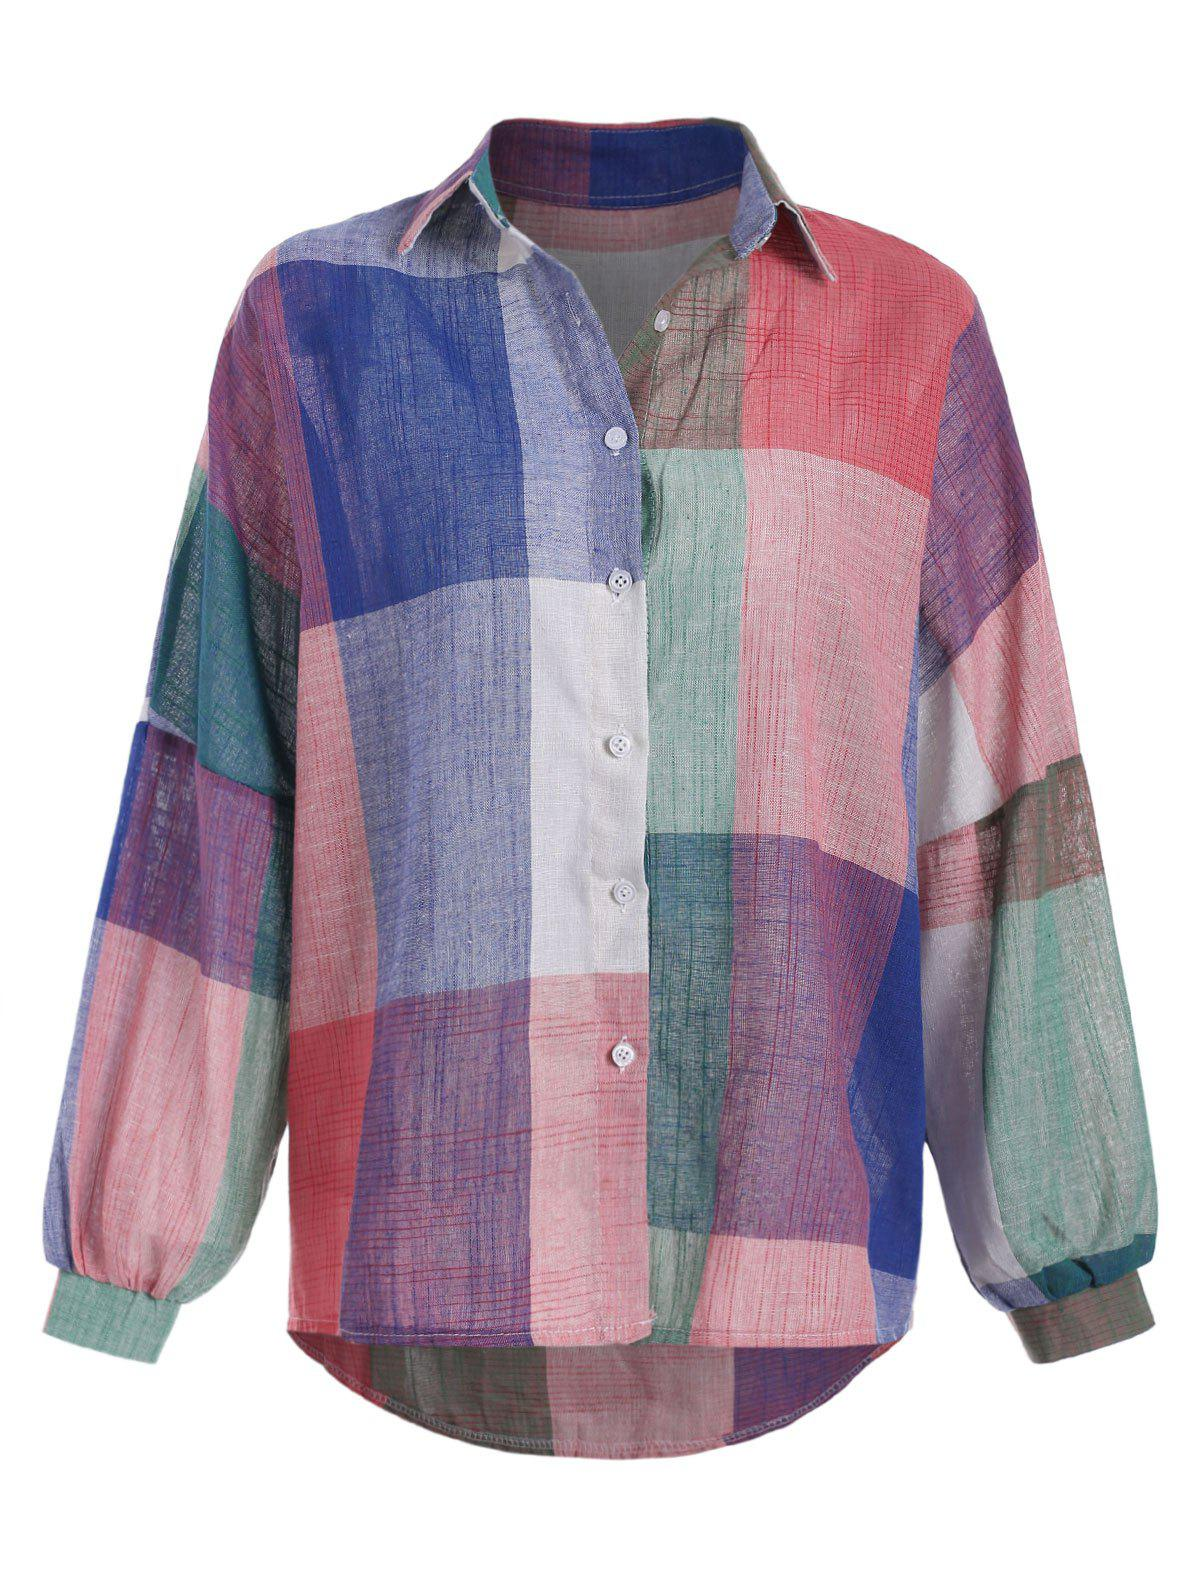 Hot Checked Oversized Colorful Woven Shirt